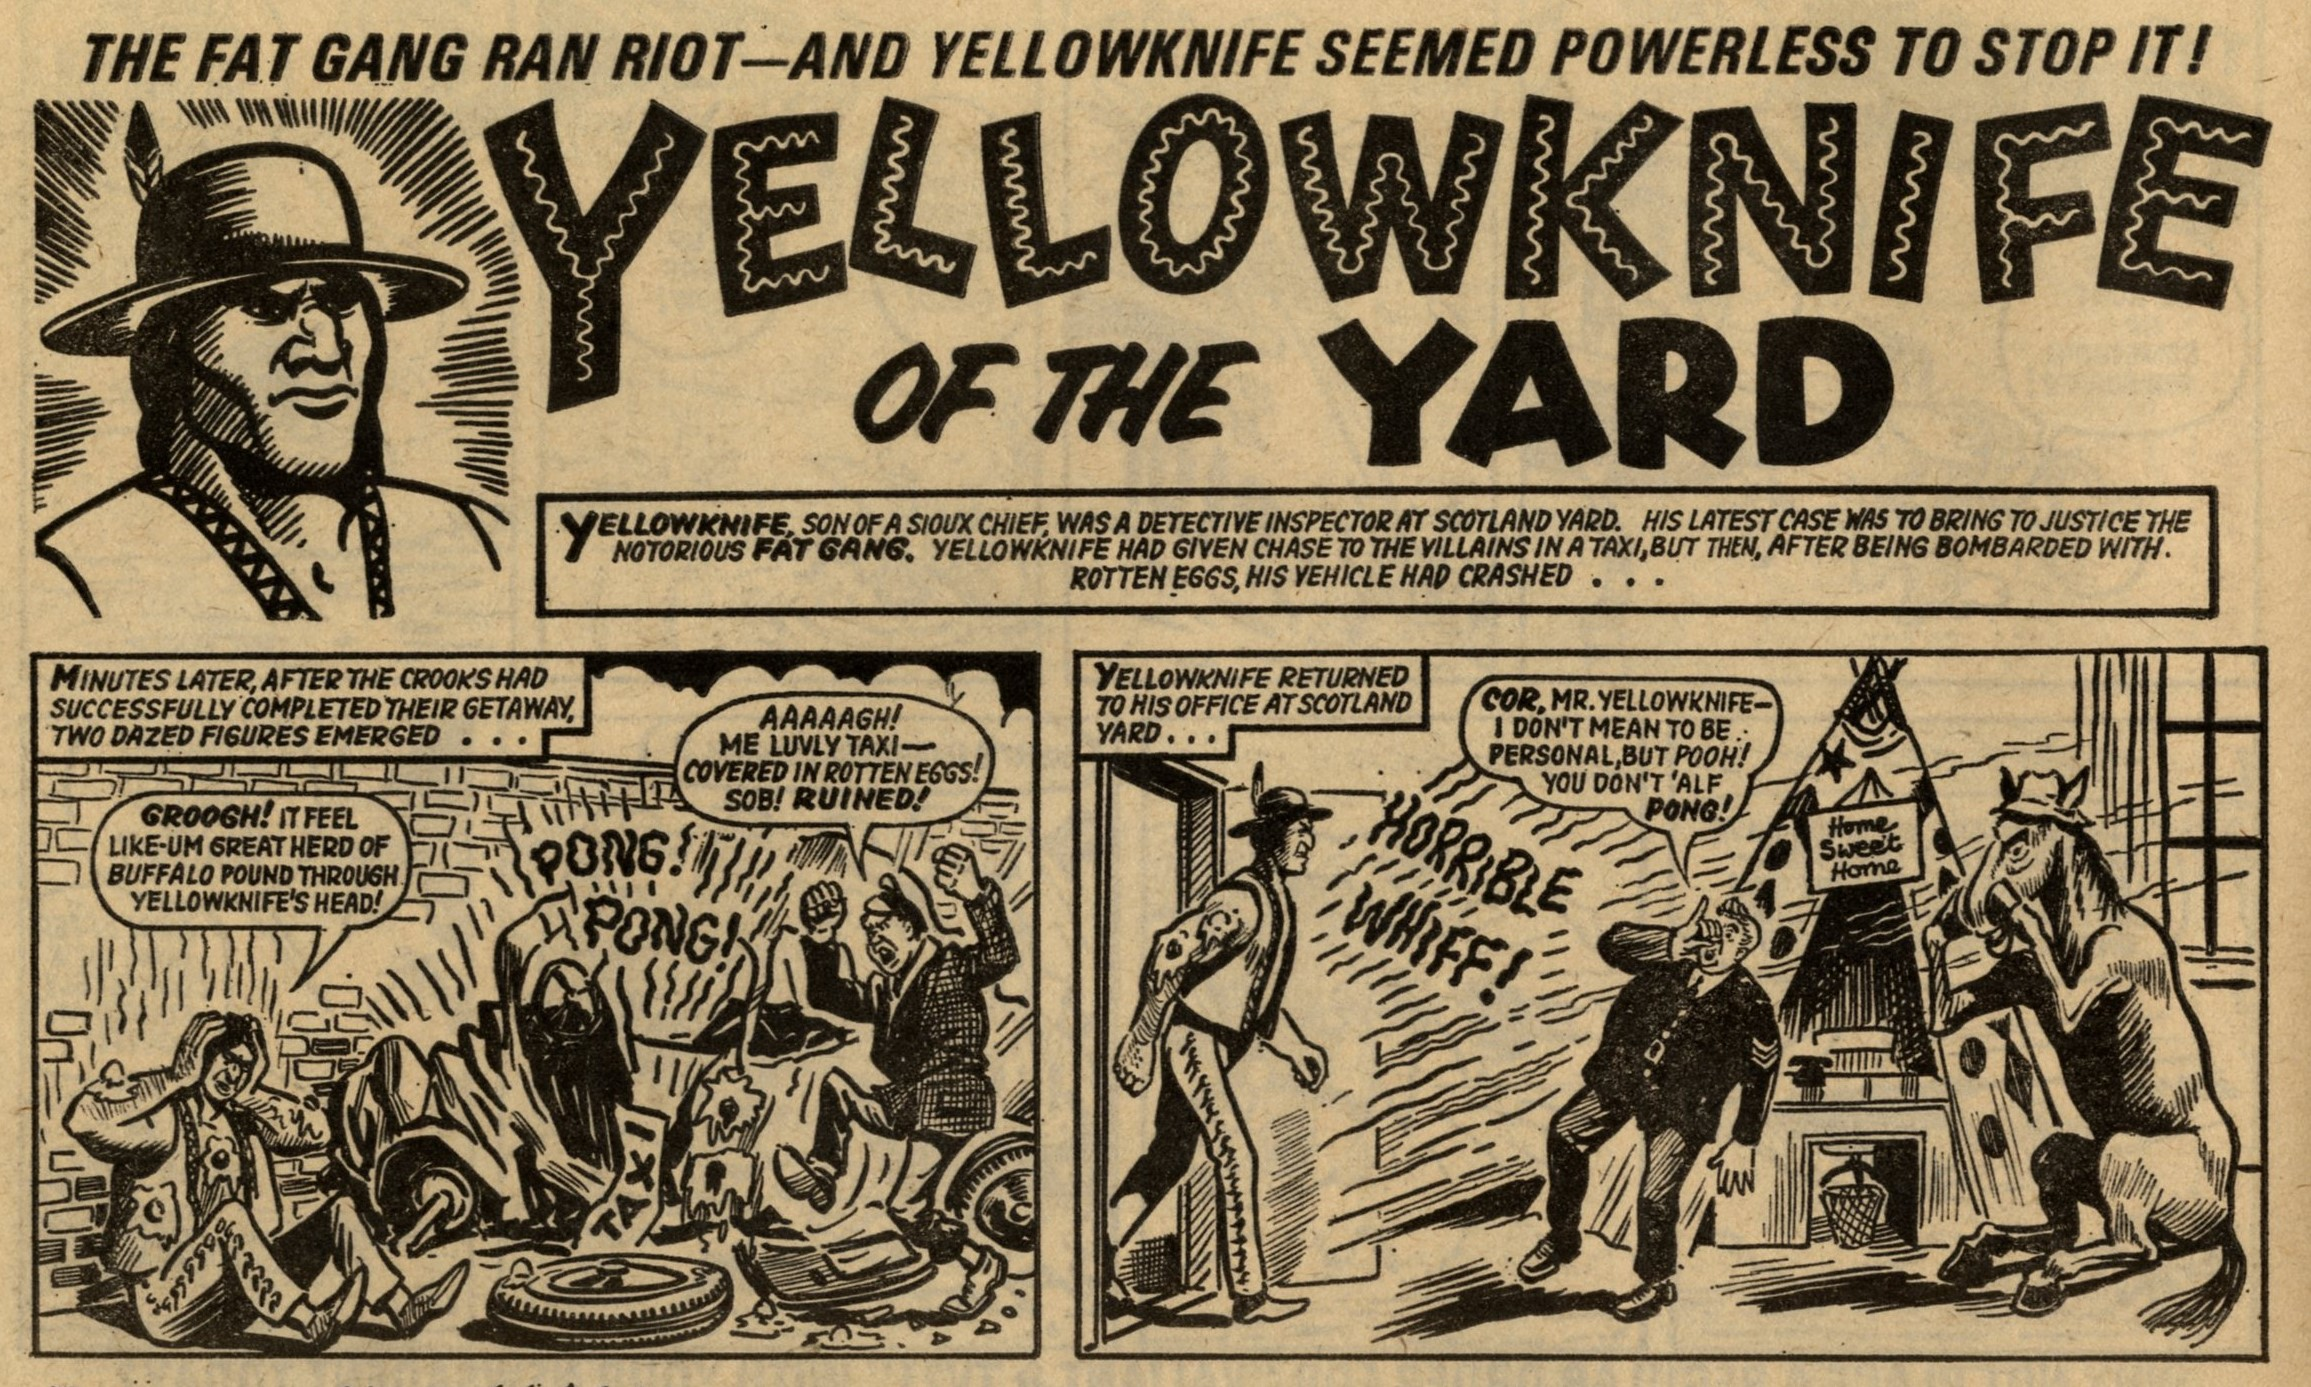 Yellowknife of the Yard: Pat Mills and John Wagner (writers), Doug Maxted (artist)